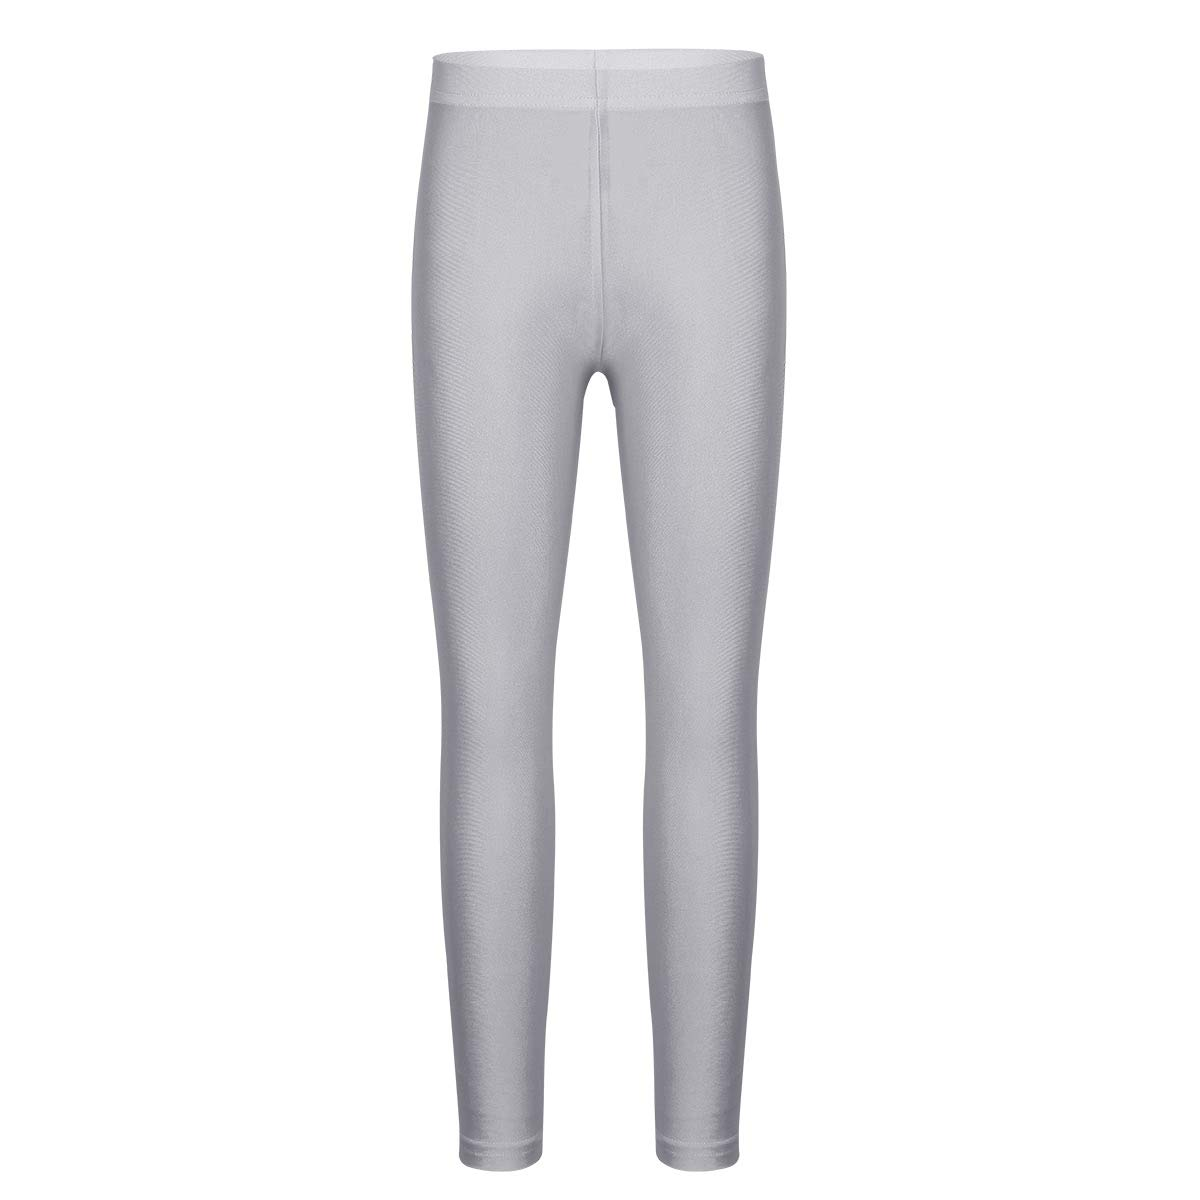 ACSUSS Girls Metallic Leggings Pants High Waist Dance Gymnastic Workout Stretchy Wet Look Footless Tights Pants Silver-Grey 5-6